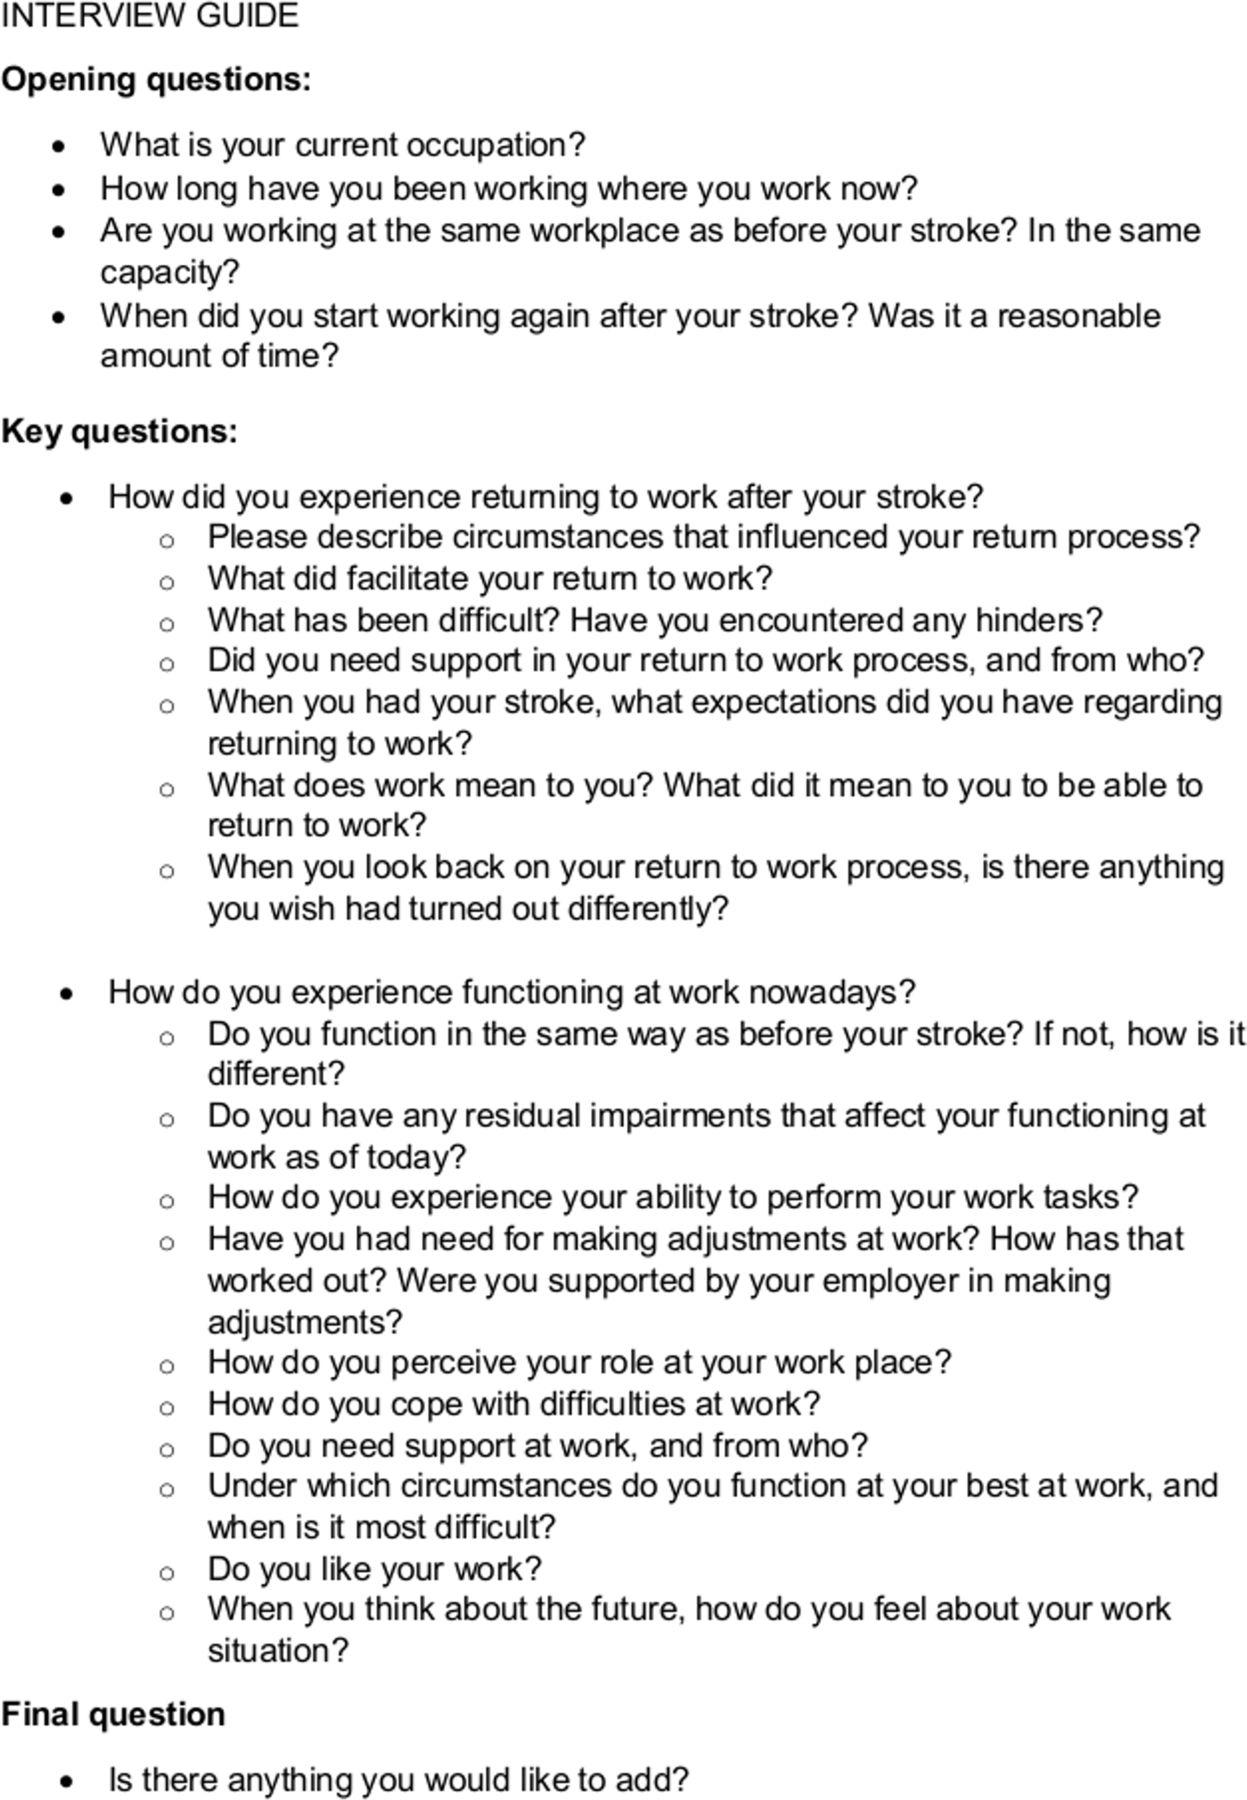 Experiences Of Returning To Work And Maintaining Work 7 To 8 Years